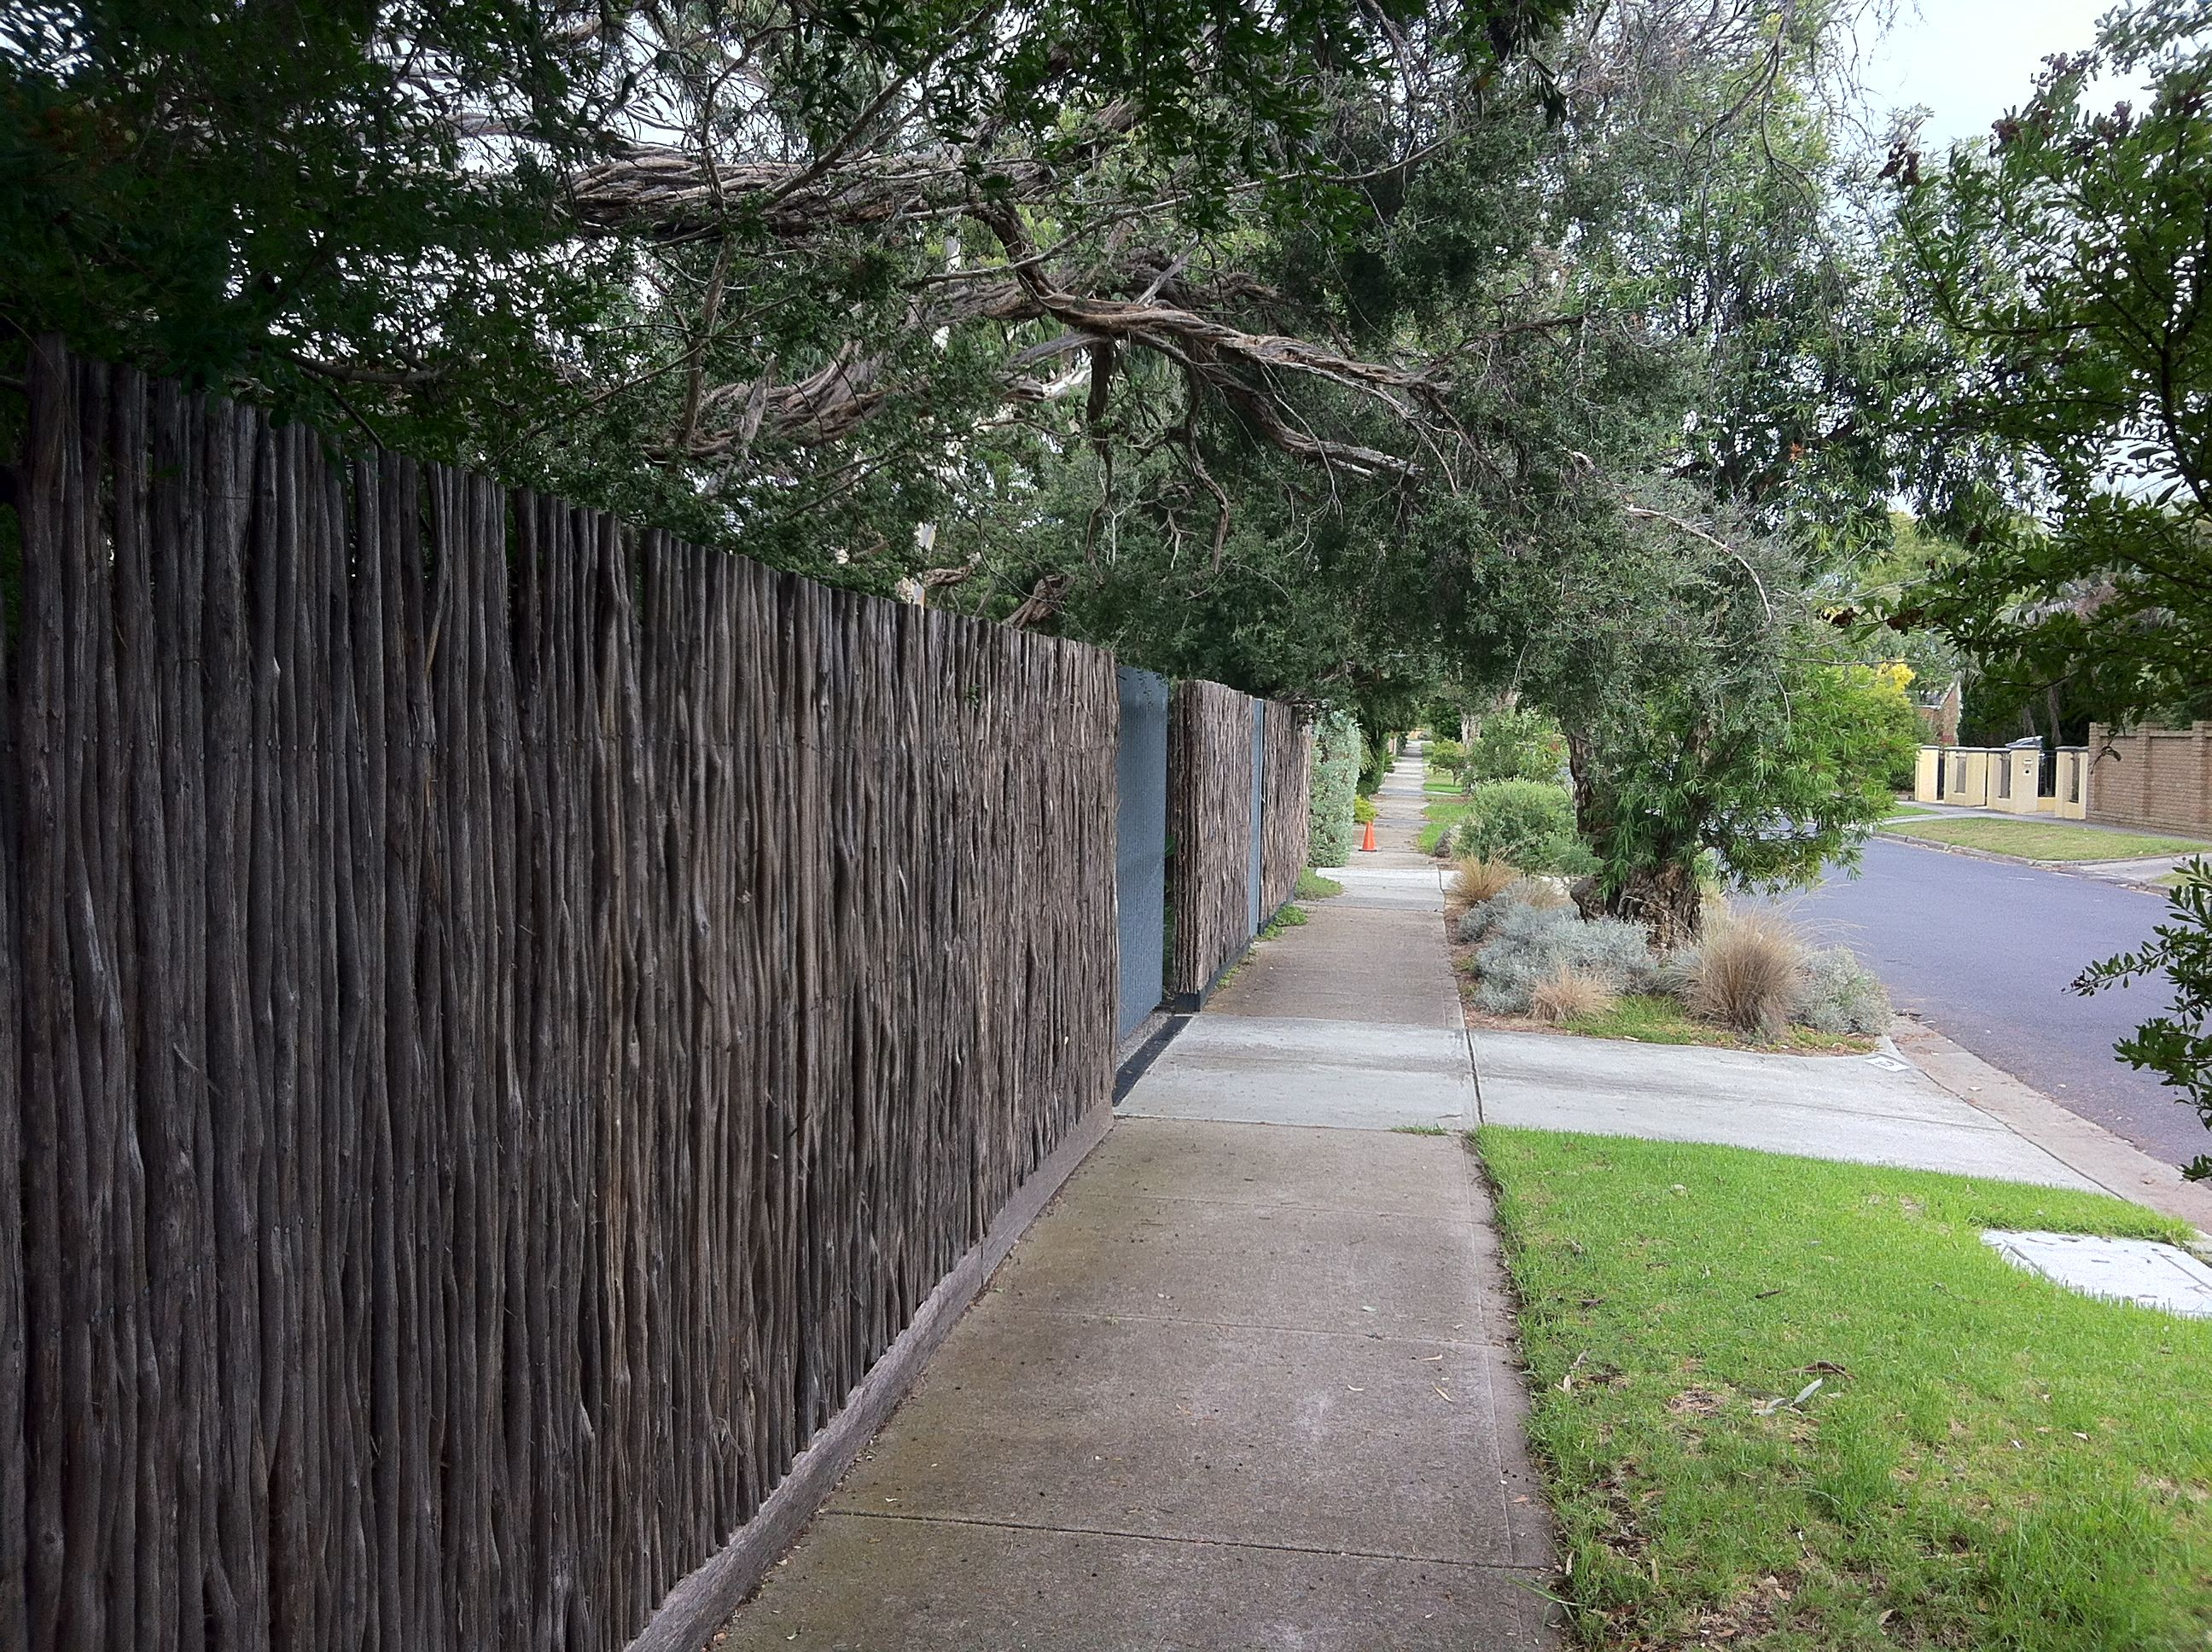 Tea tree as a fence material for privacy to a front yard tea tree as a fence material for privacy to a front yard baanklon Gallery